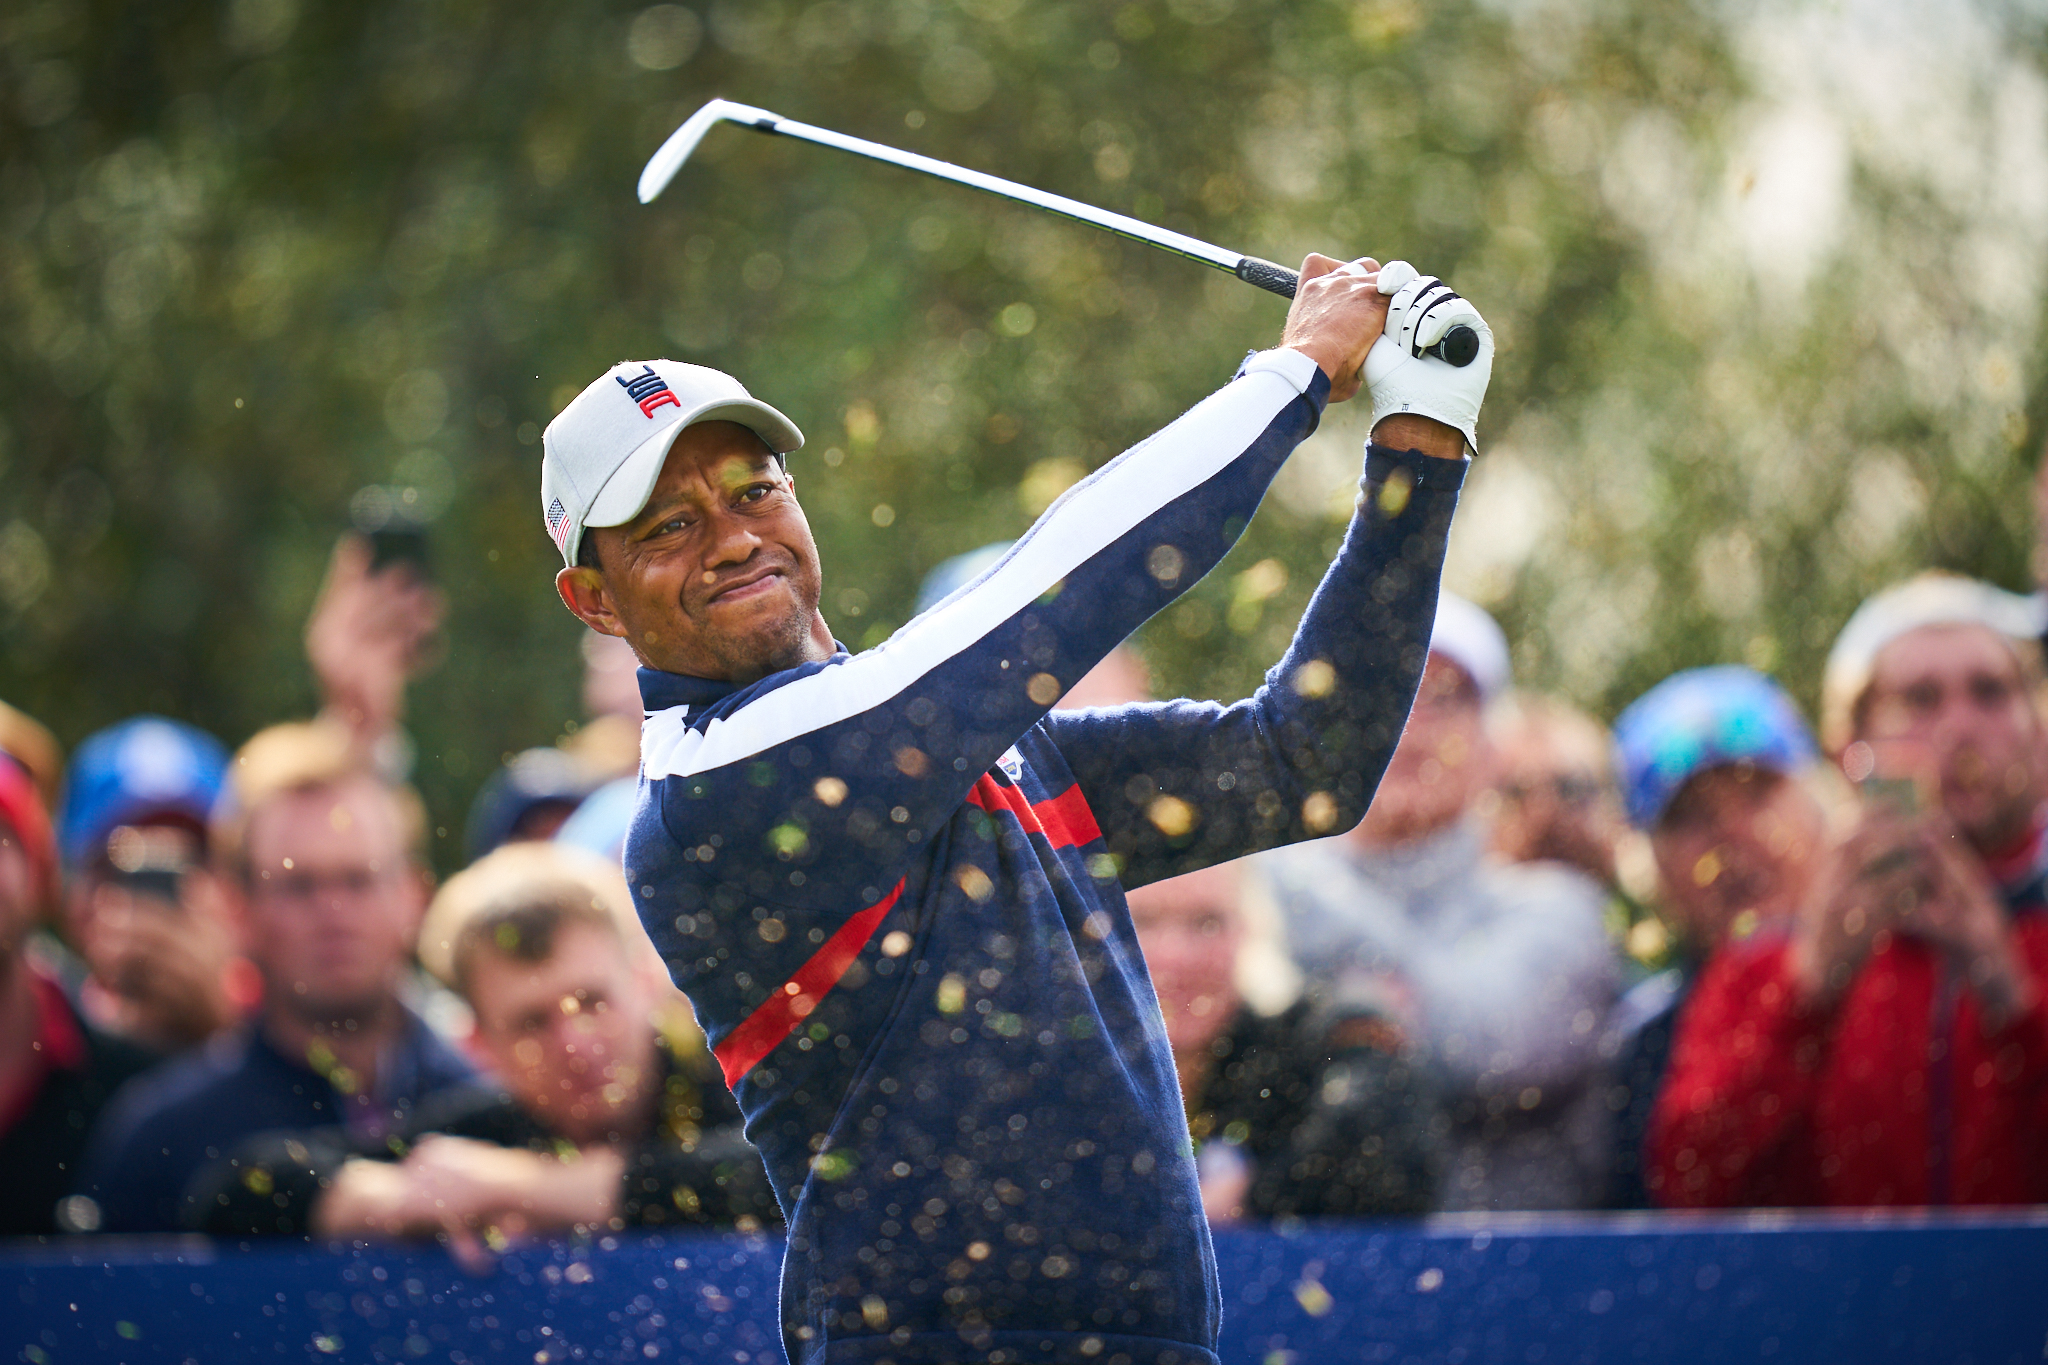 Tiger Woods, Friday Foursomes  Sony A9, Sony 400mm f2.8 GM-OSS